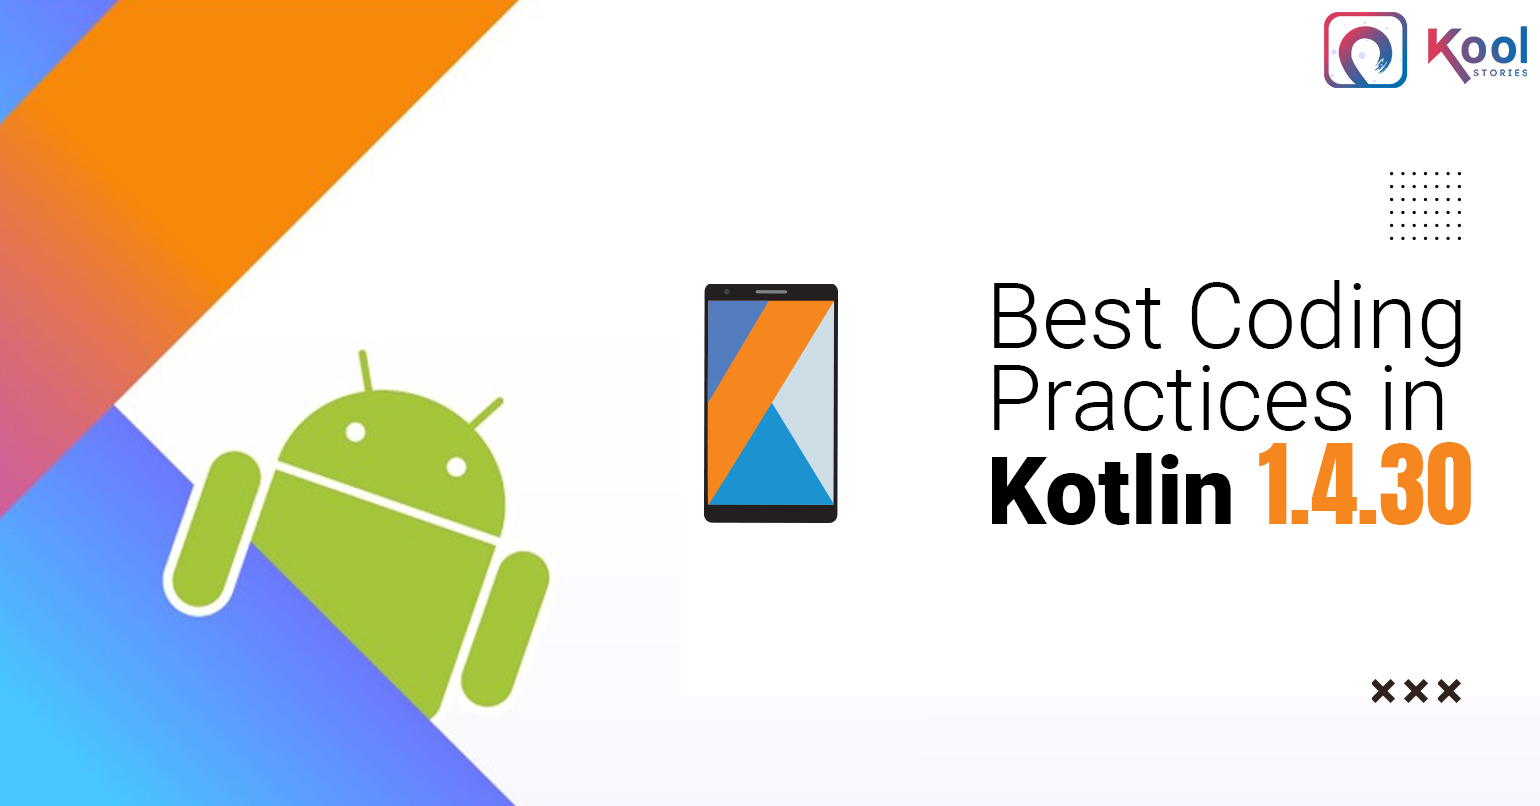 Best Coding Practices in Kotlin 1.4.30